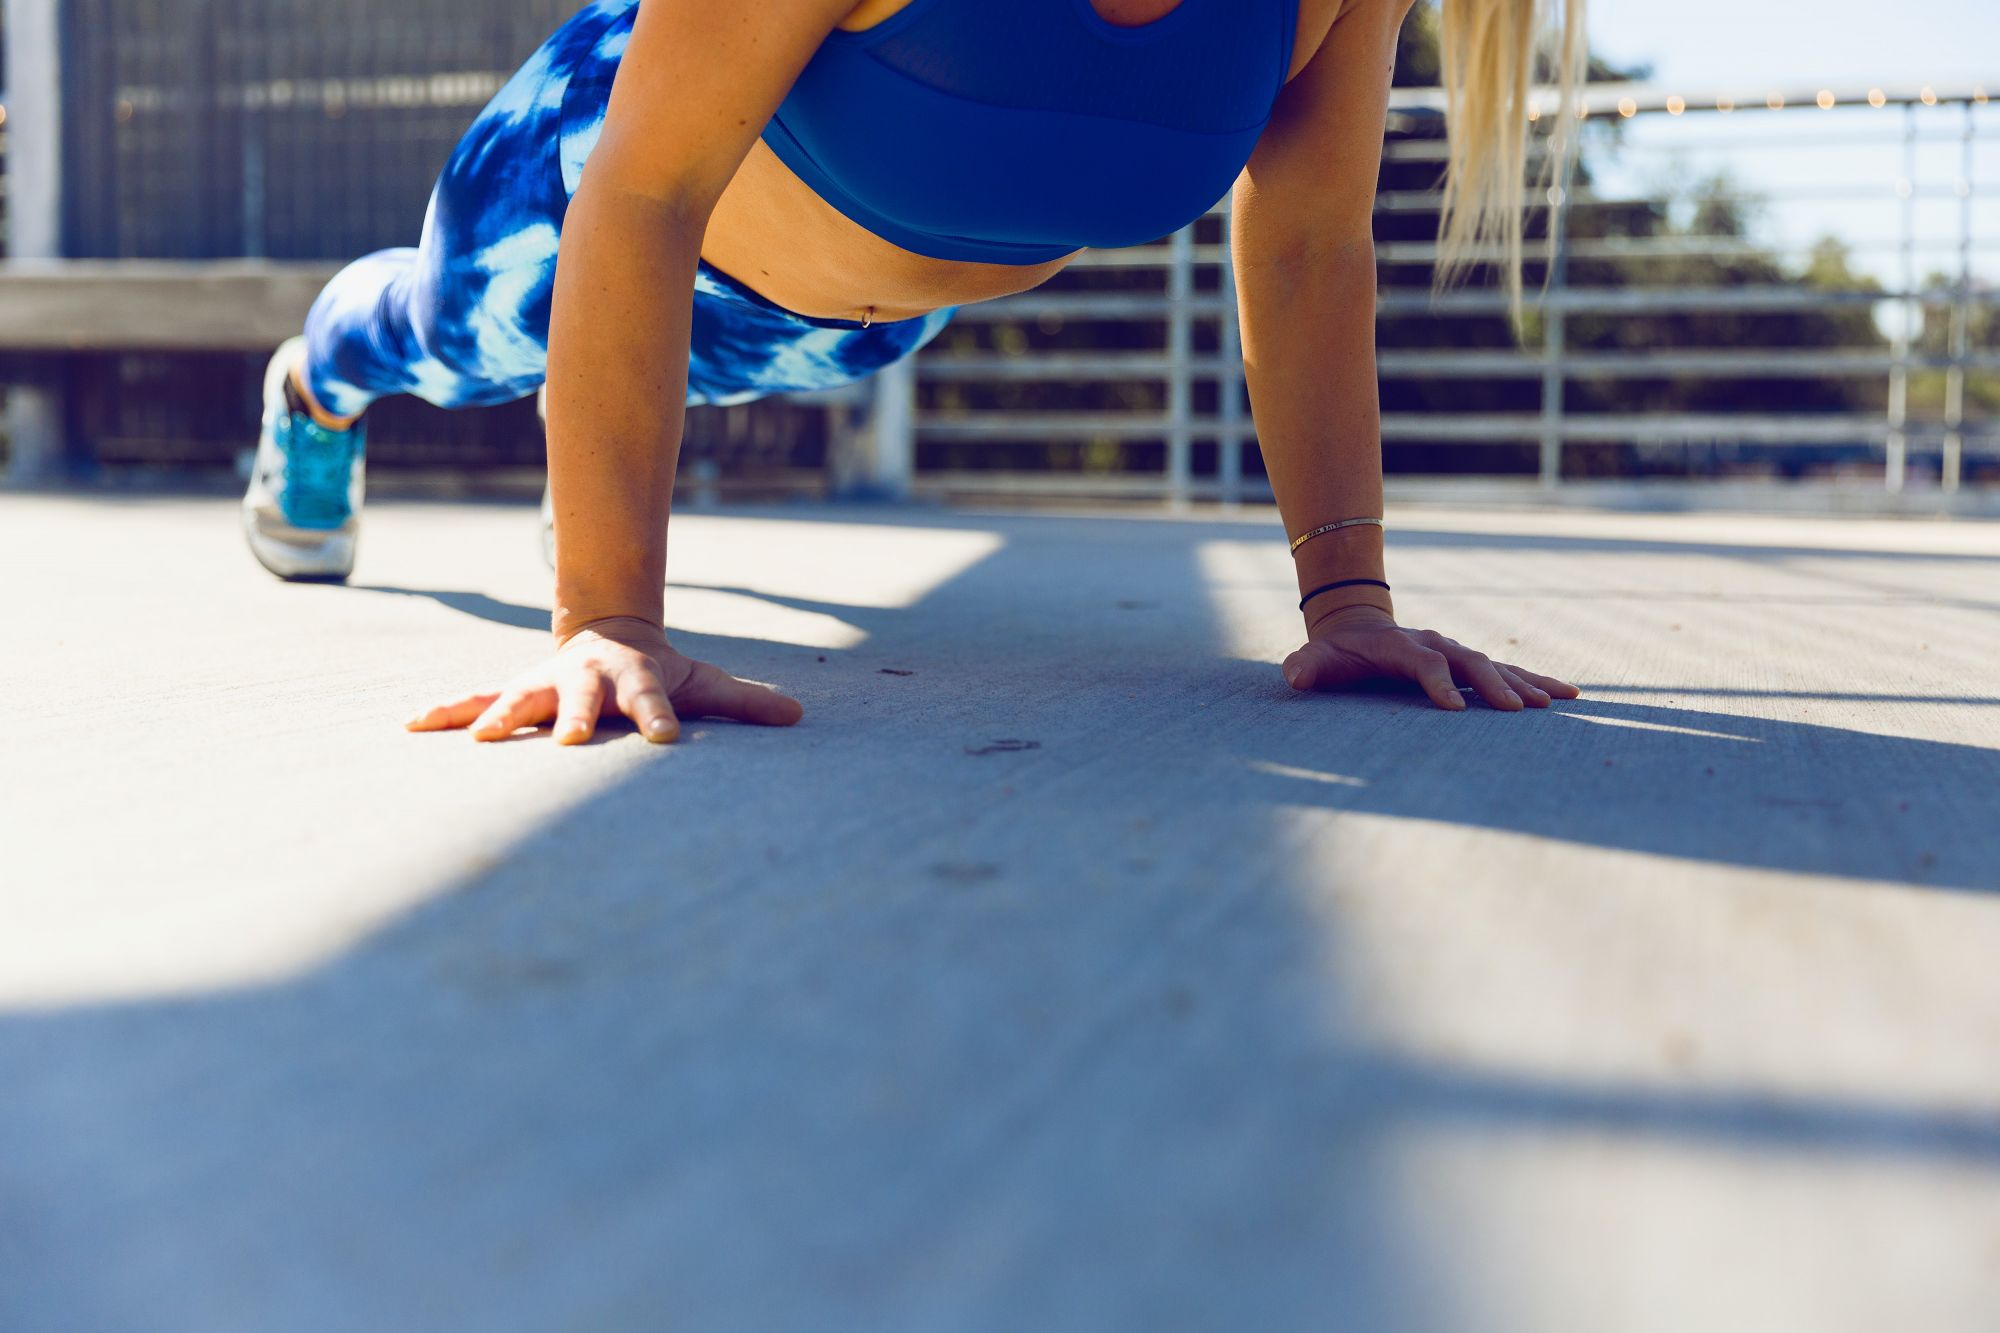 Challenge Yourself With These Hiit Workouts That You Can Do At Home